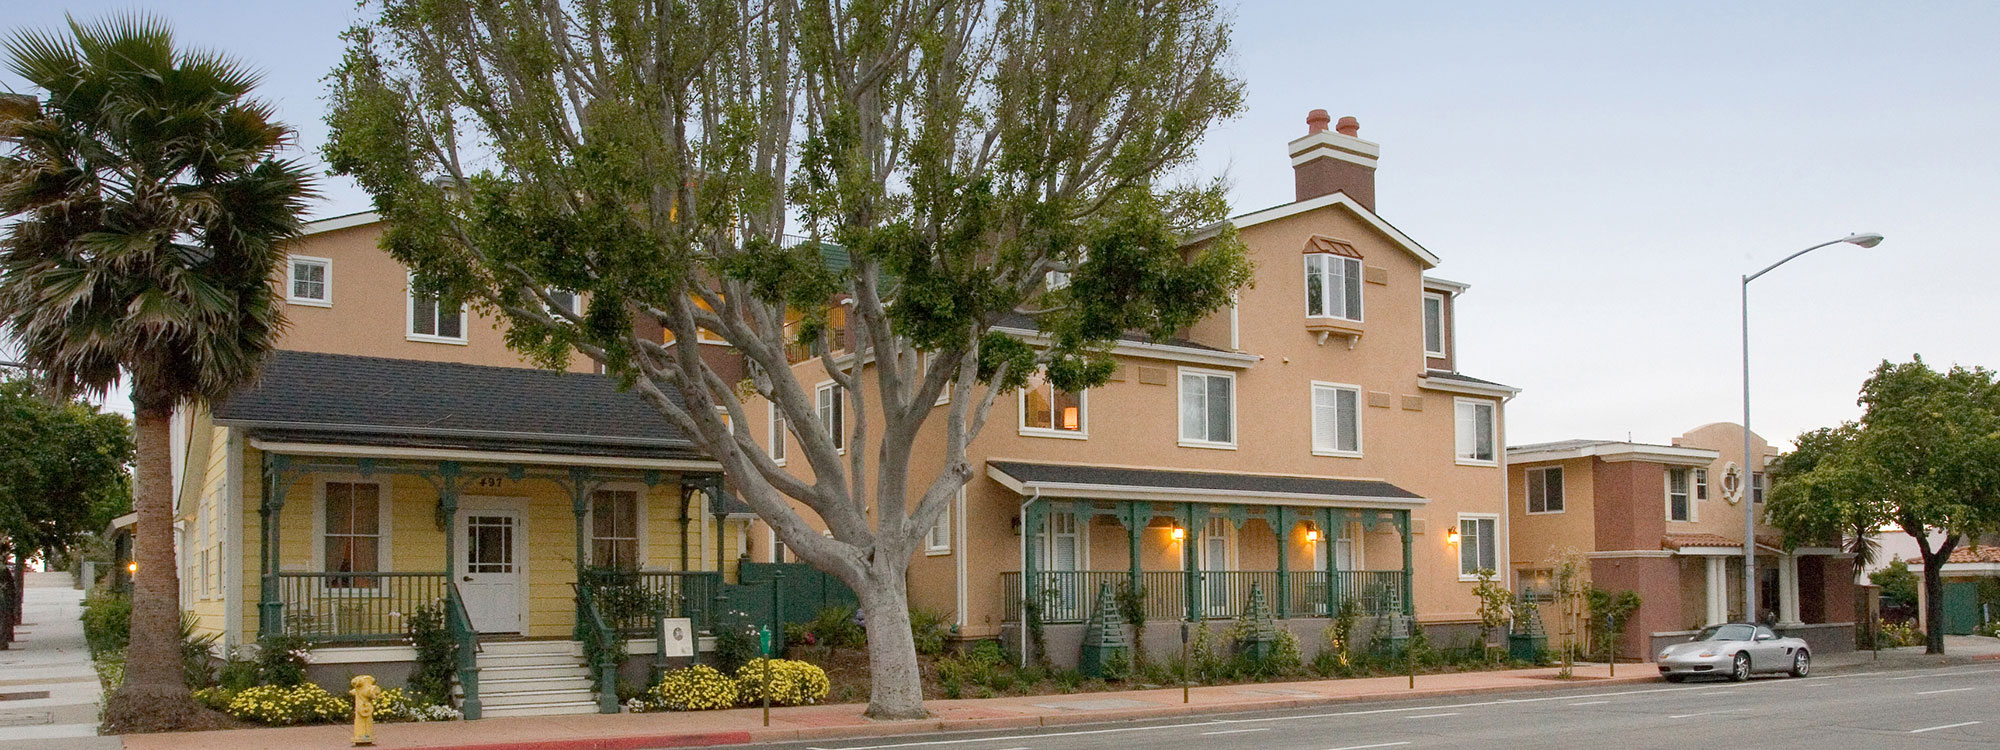 Assisted Living construction - San Luis Obispo Assisted Living facility builder - JW Design & Construction